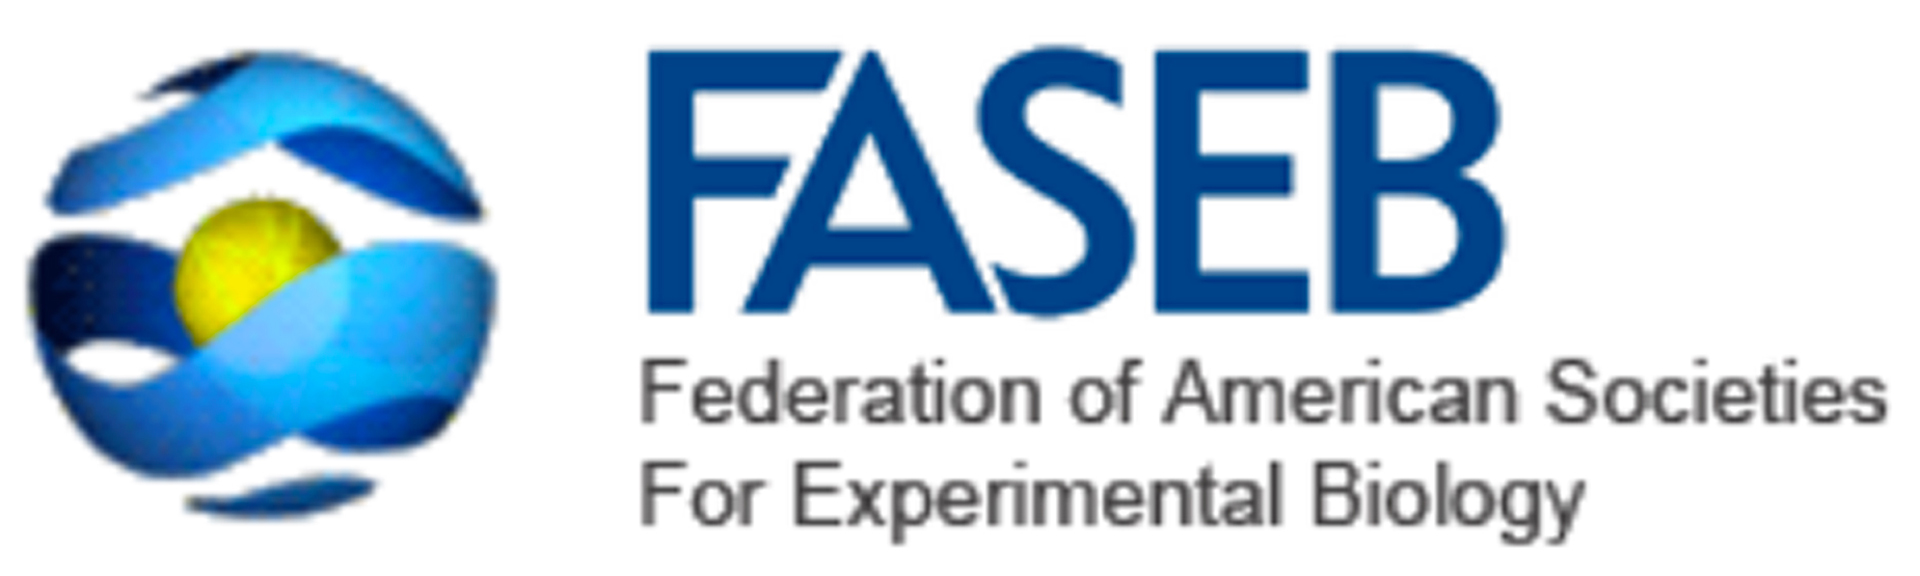 Federation of American Societies for Experimental Biology (FASEB)